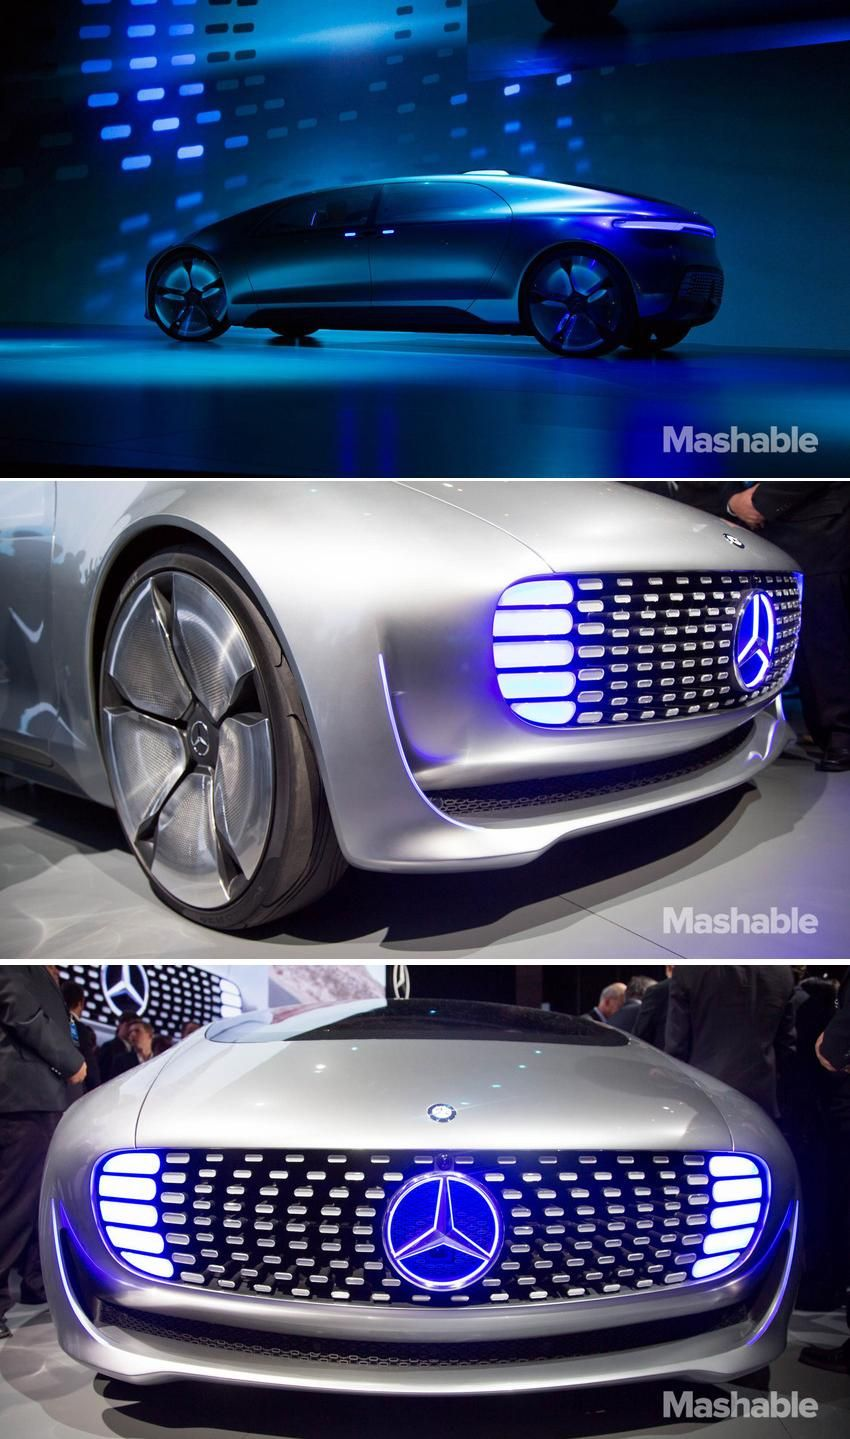 Mercedes Benz Self Driving Concept Car Spotted On San Francisco Roads With Images Concept Cars Dream Cars Mercedes